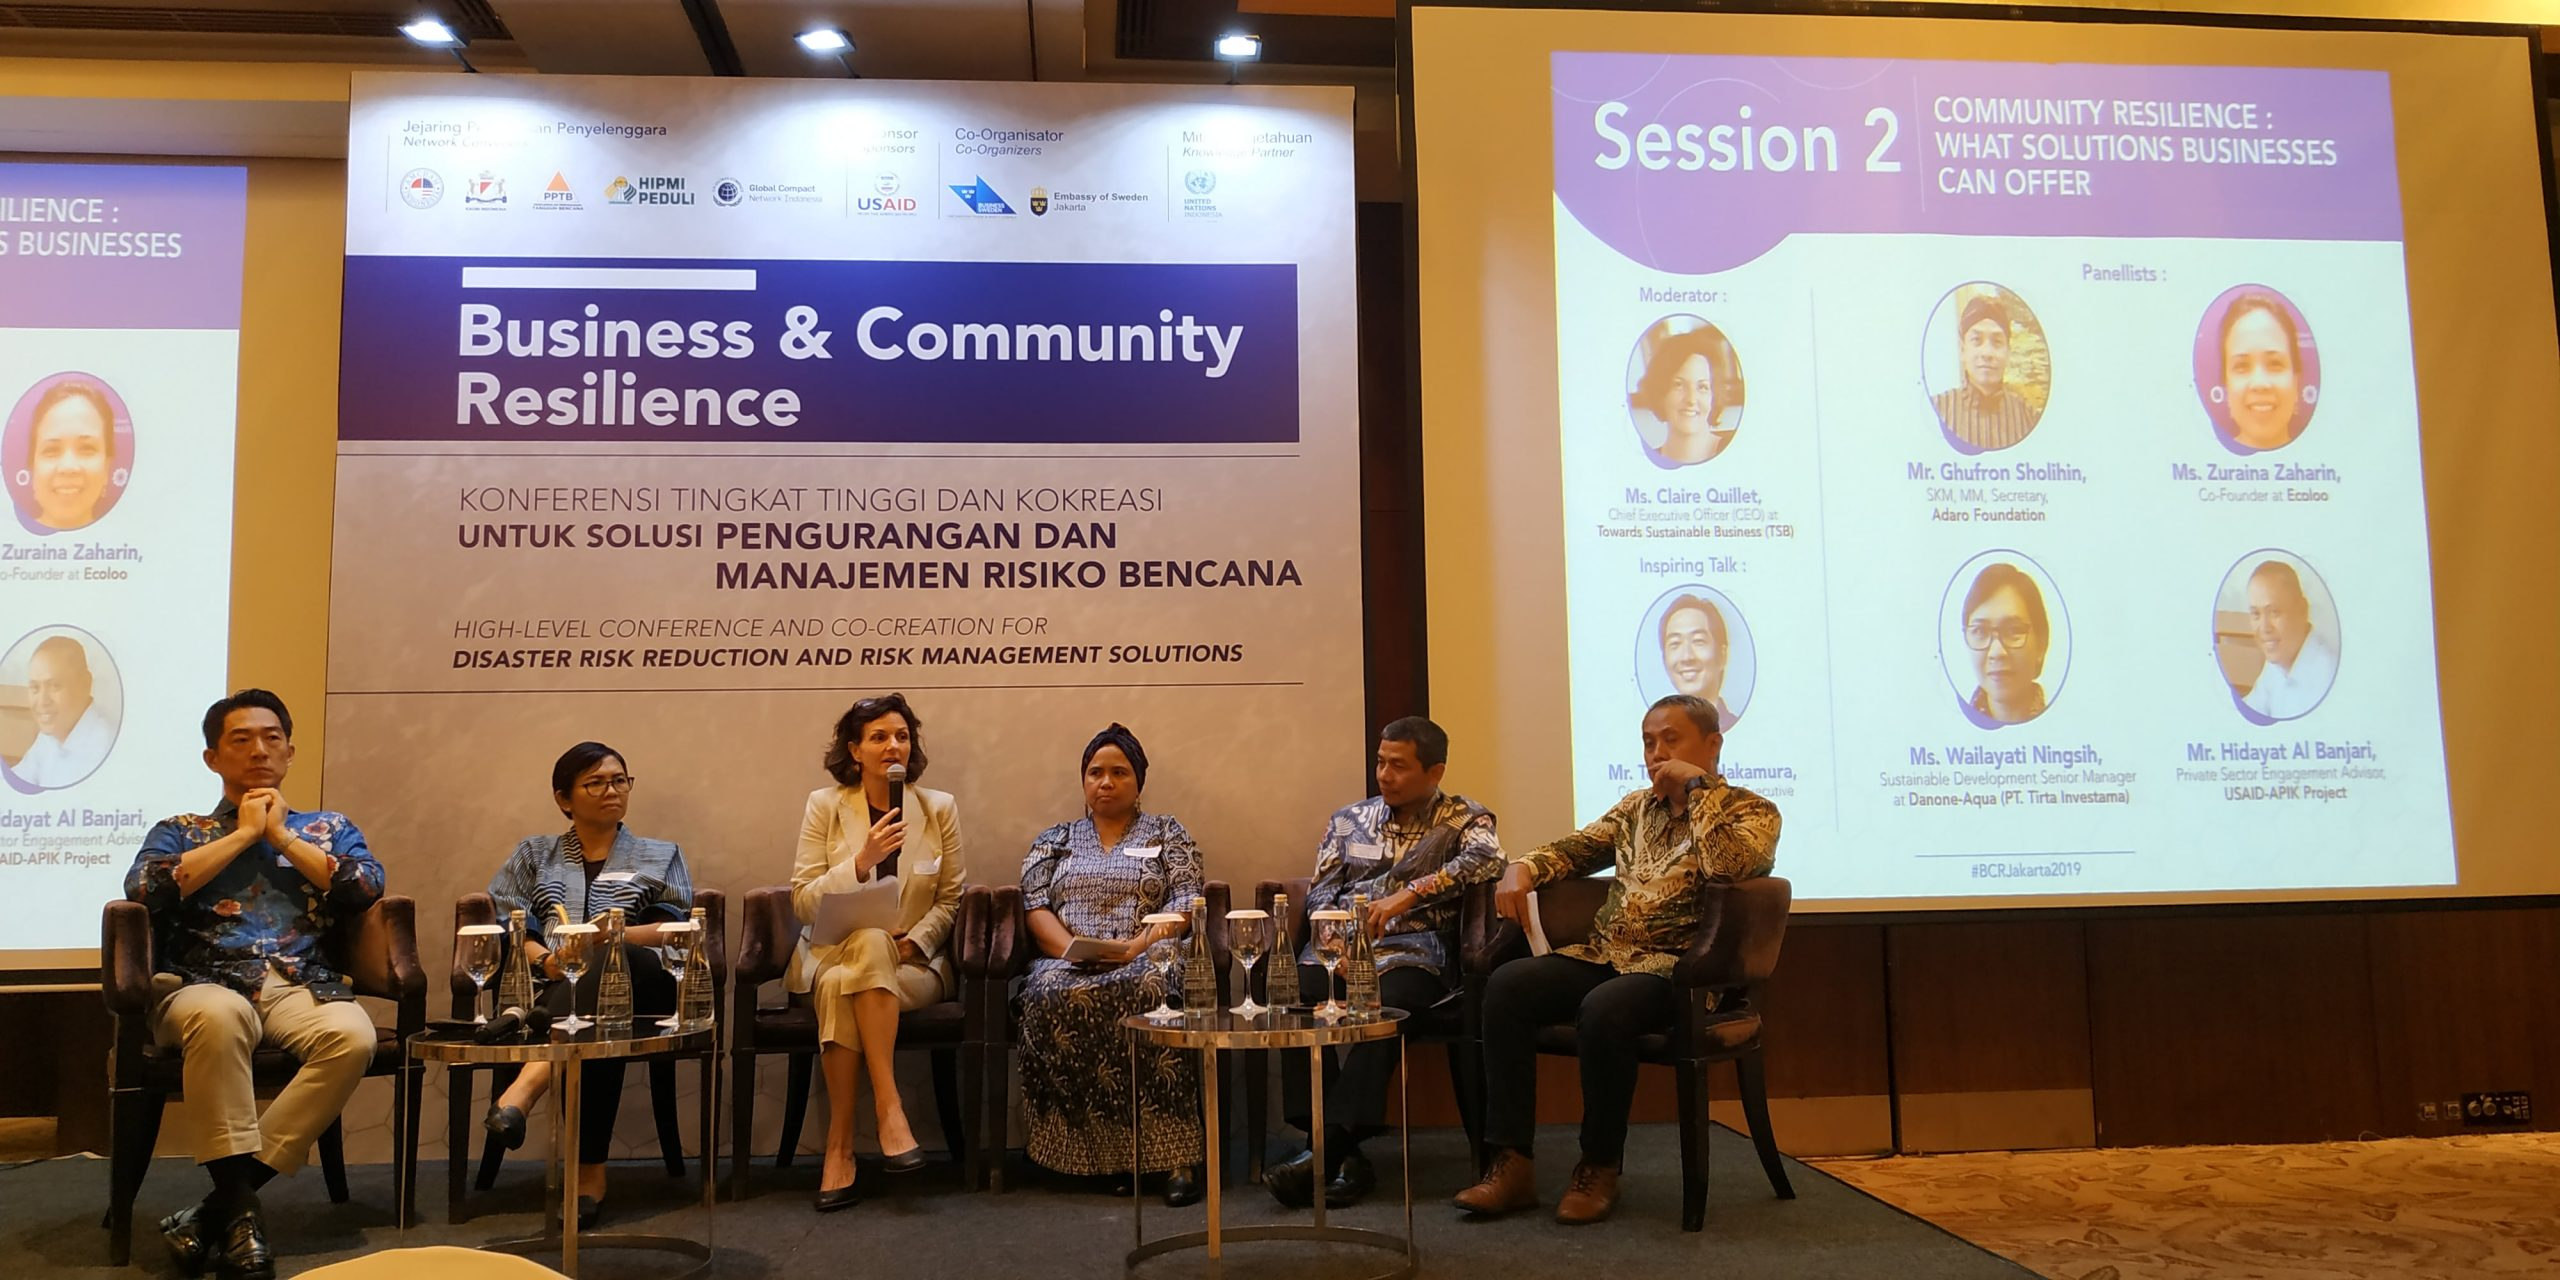 Oct 23, 2019 – UNICEF Business & Community Resilience Conference